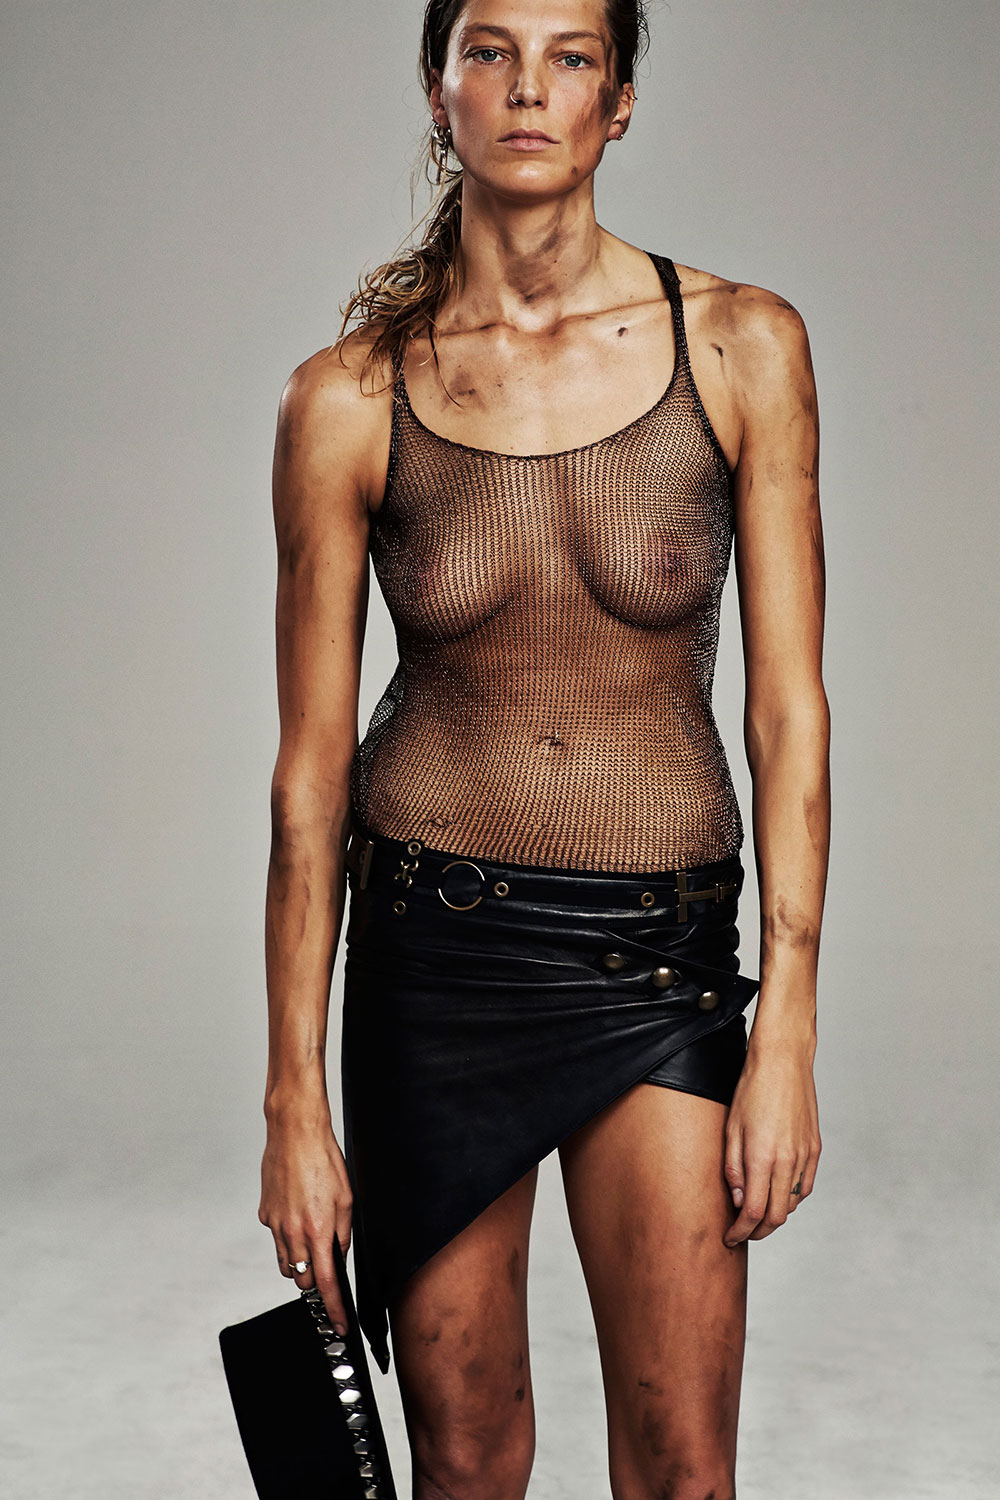 Daria Werbowy See-thru Ph...